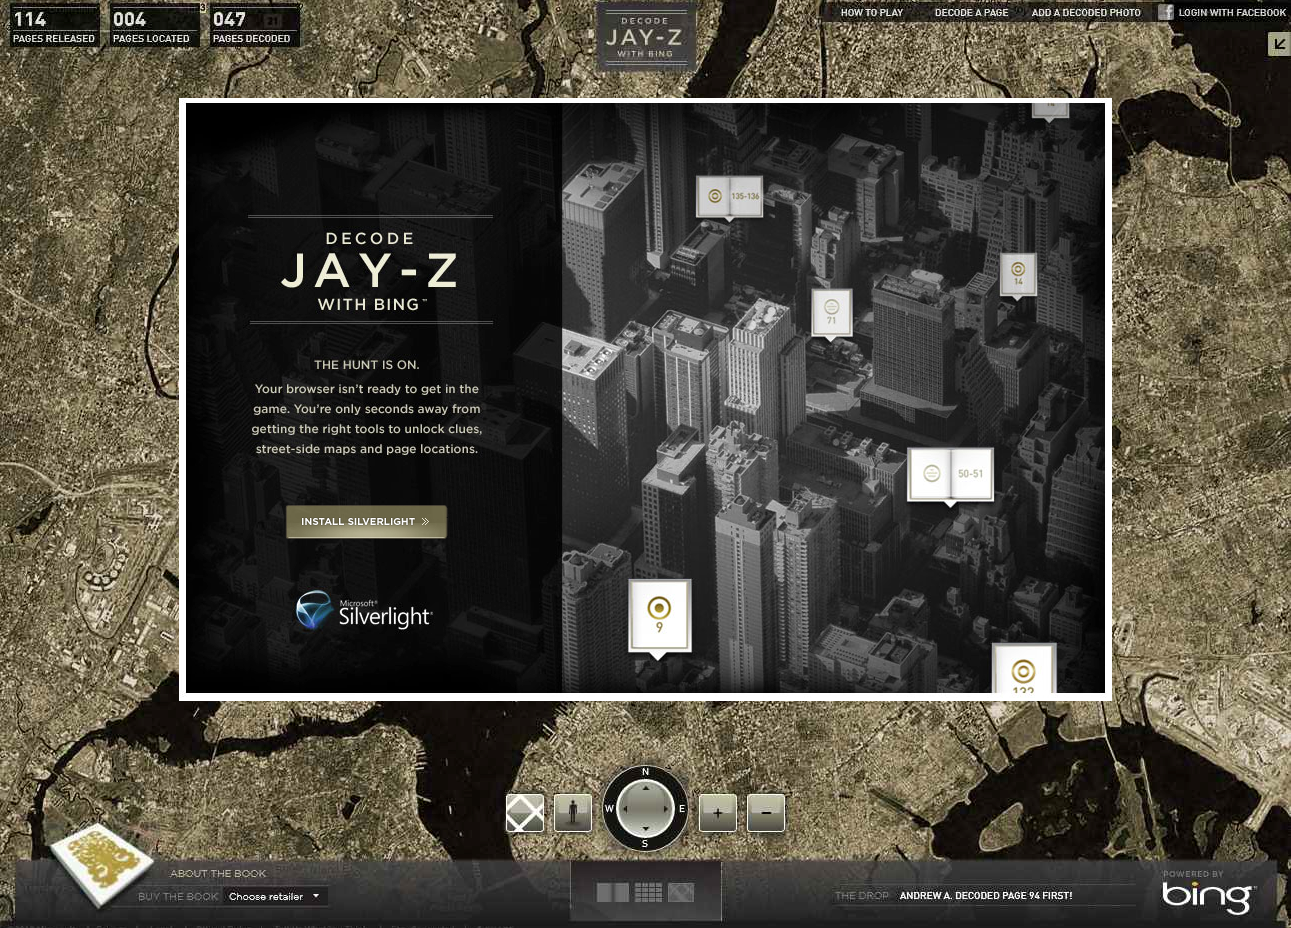 jay z decoded Read a free sample or buy decoded by jay-z you can read this book with ibooks on your iphone, ipad, ipod touch, or mac.